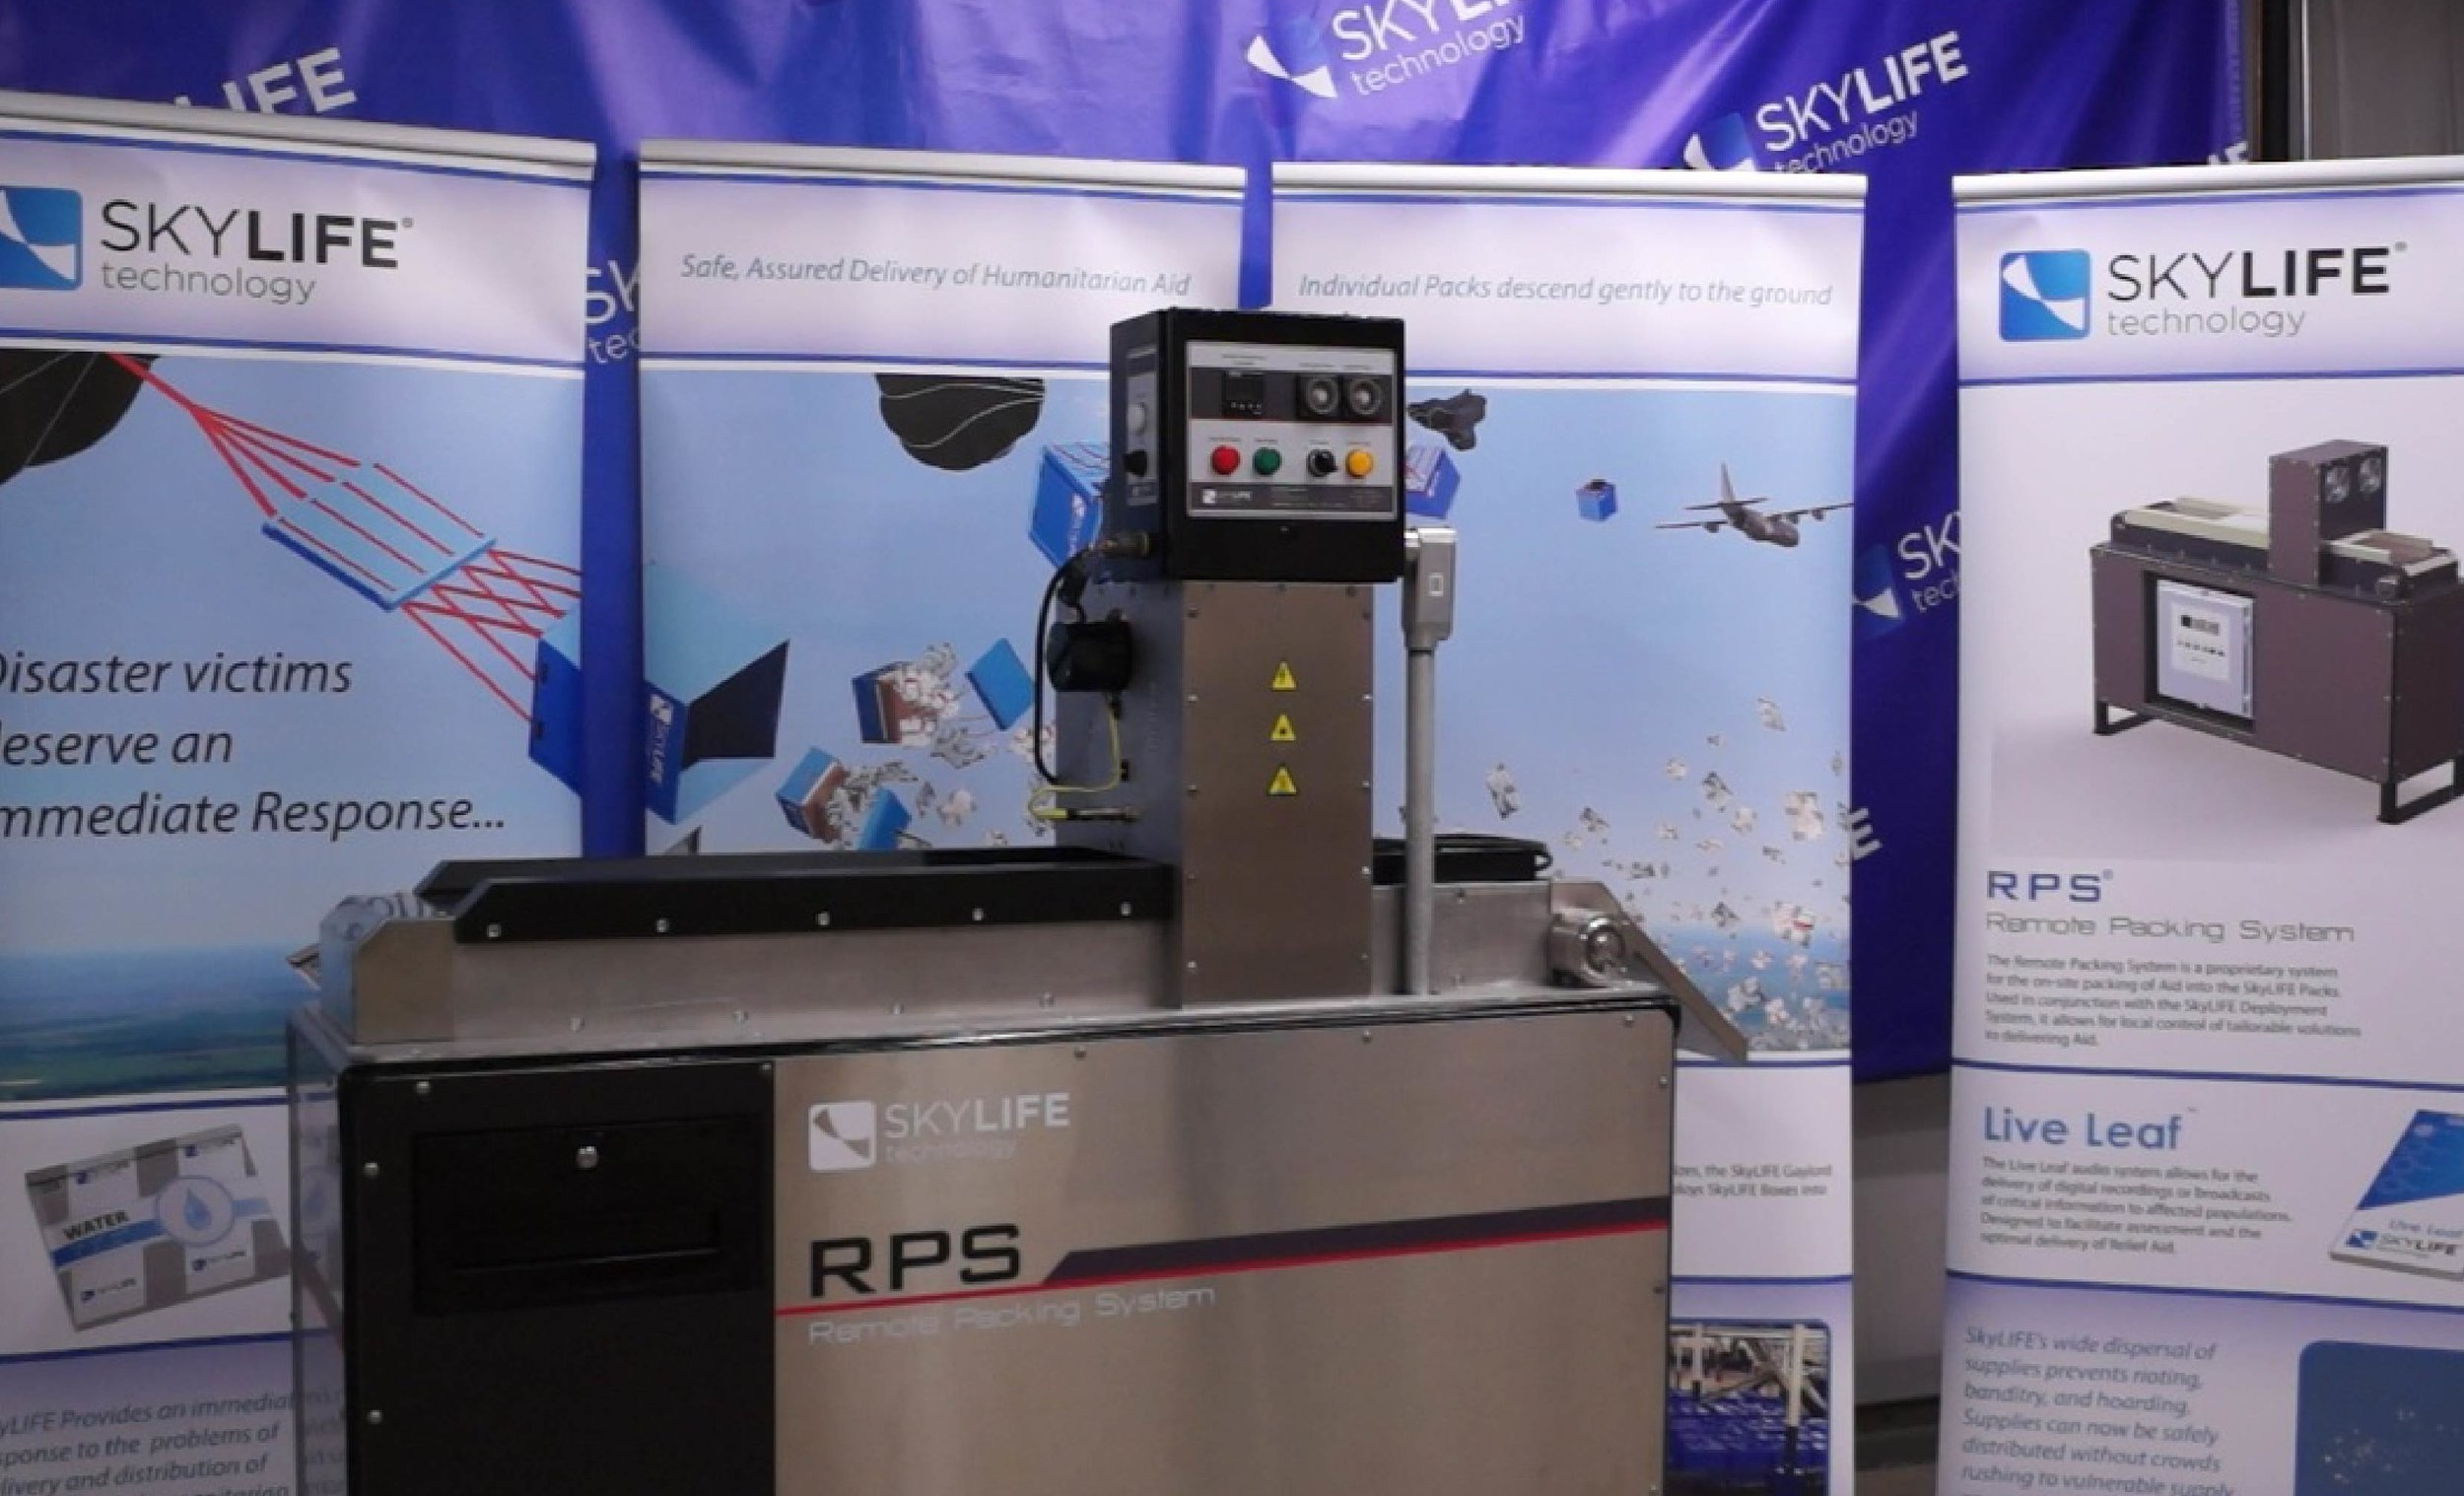 RPS    Remote Packaging System